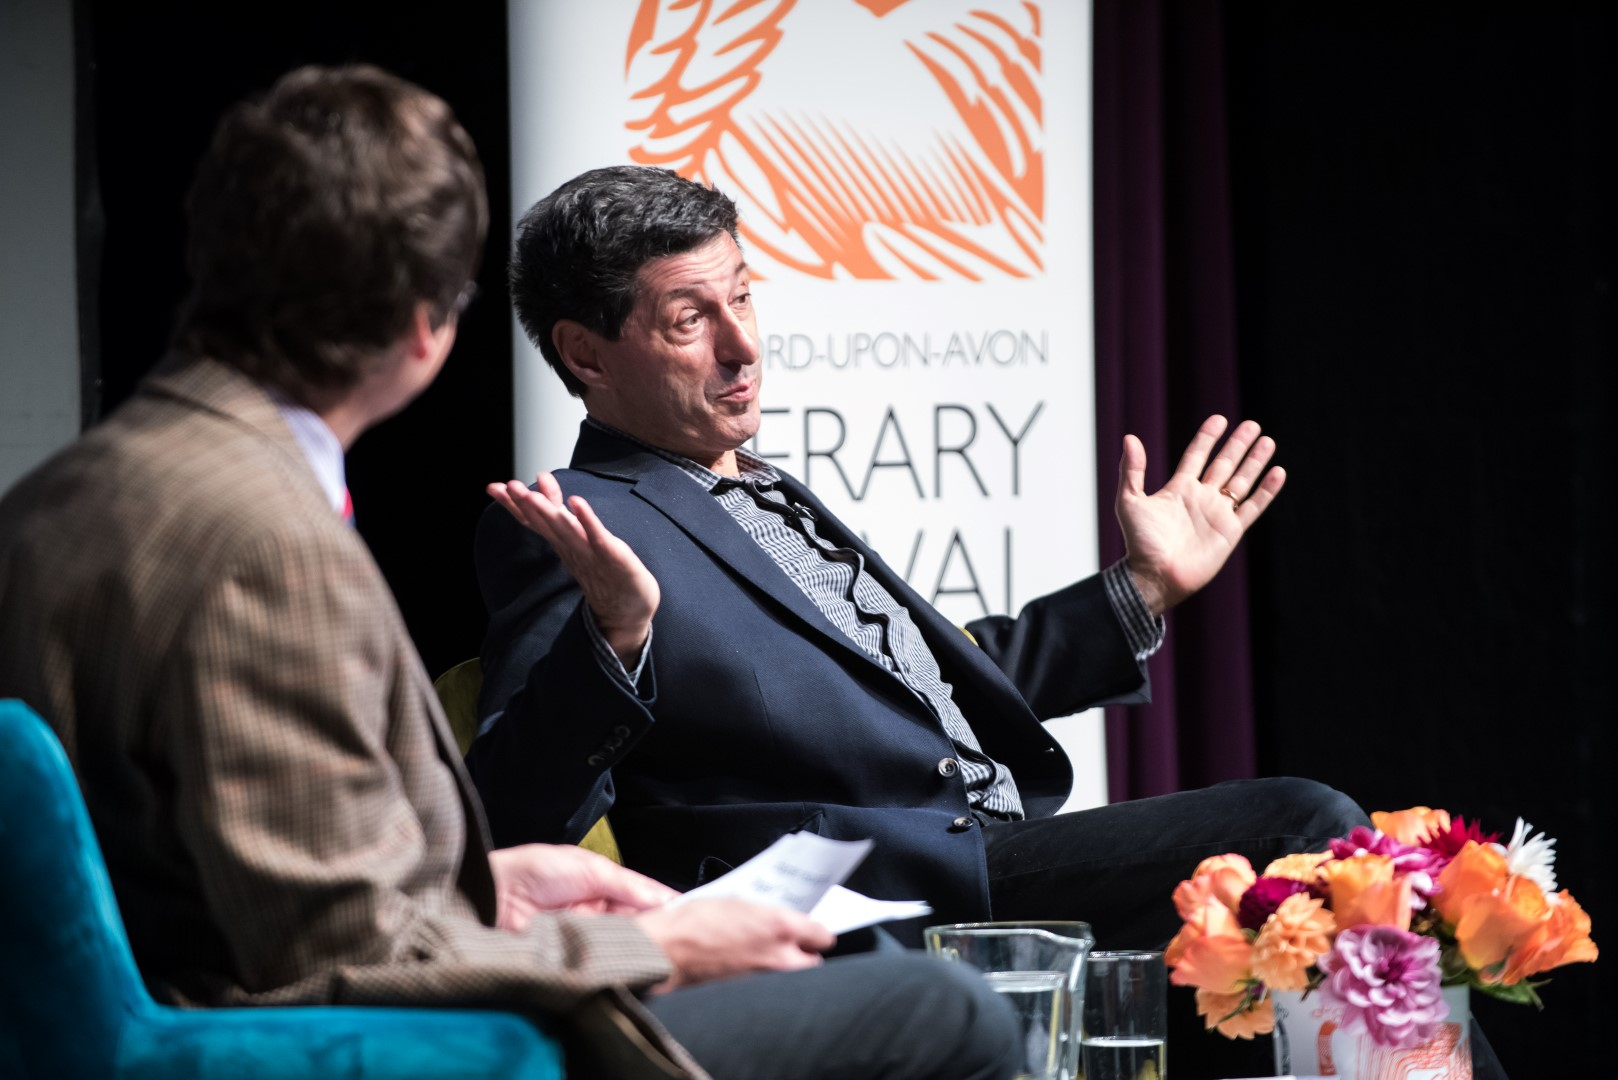 Jon Sopel at Stratford Literary Festival